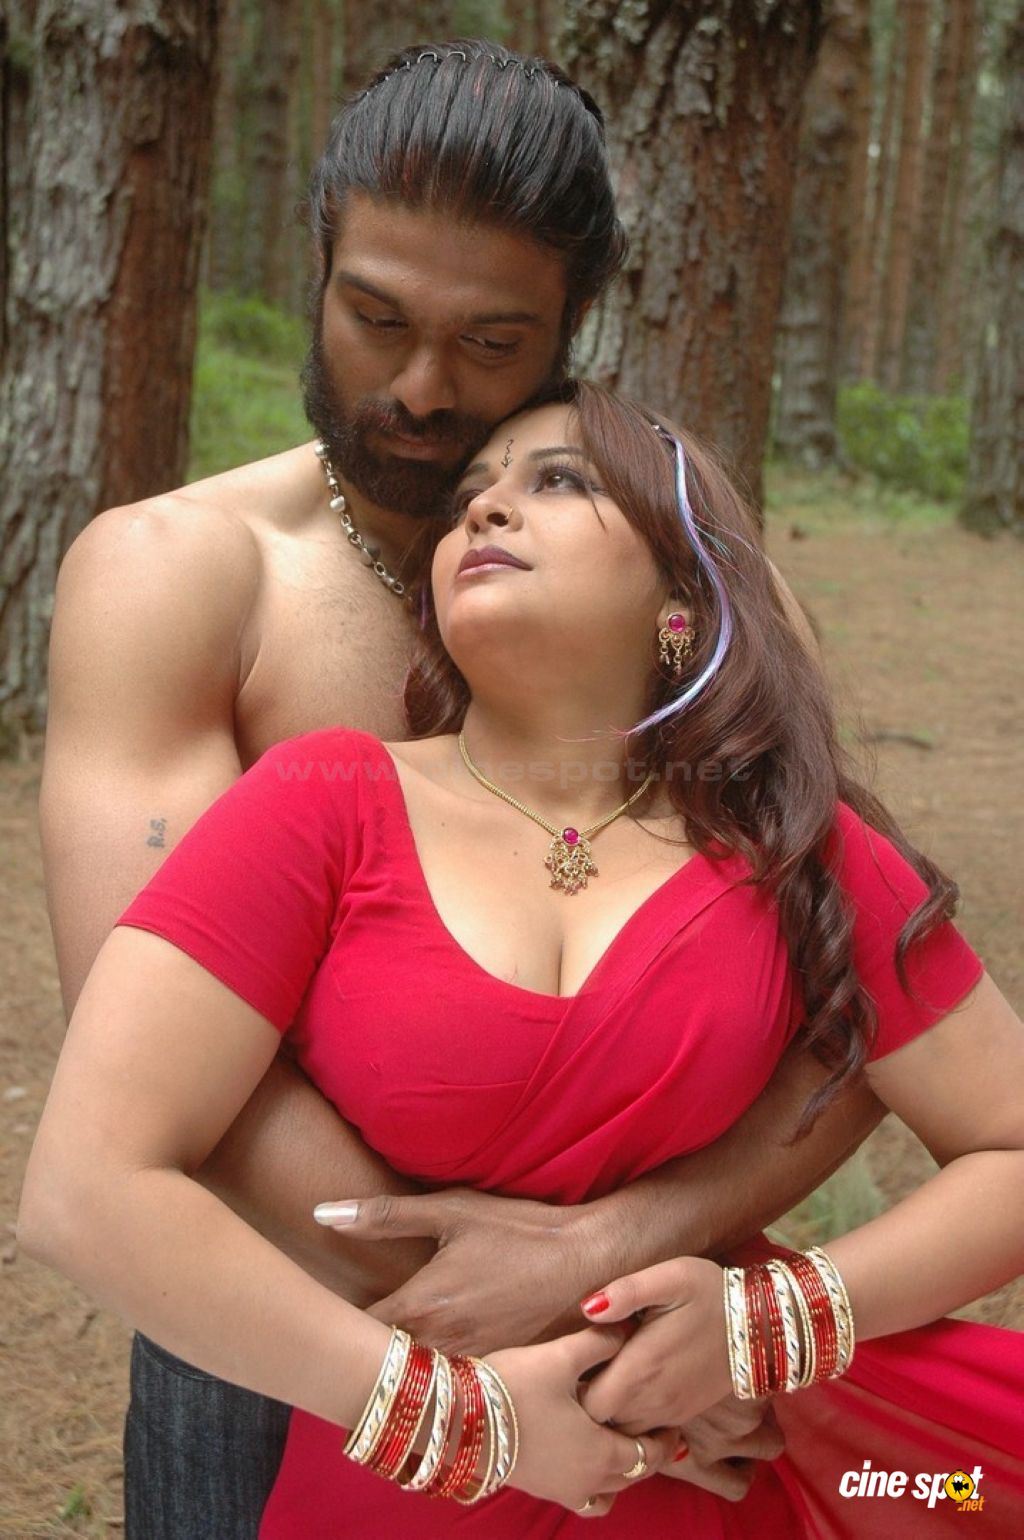 South Indian Sex Bomb Actress Showing Sexy Big Boombs